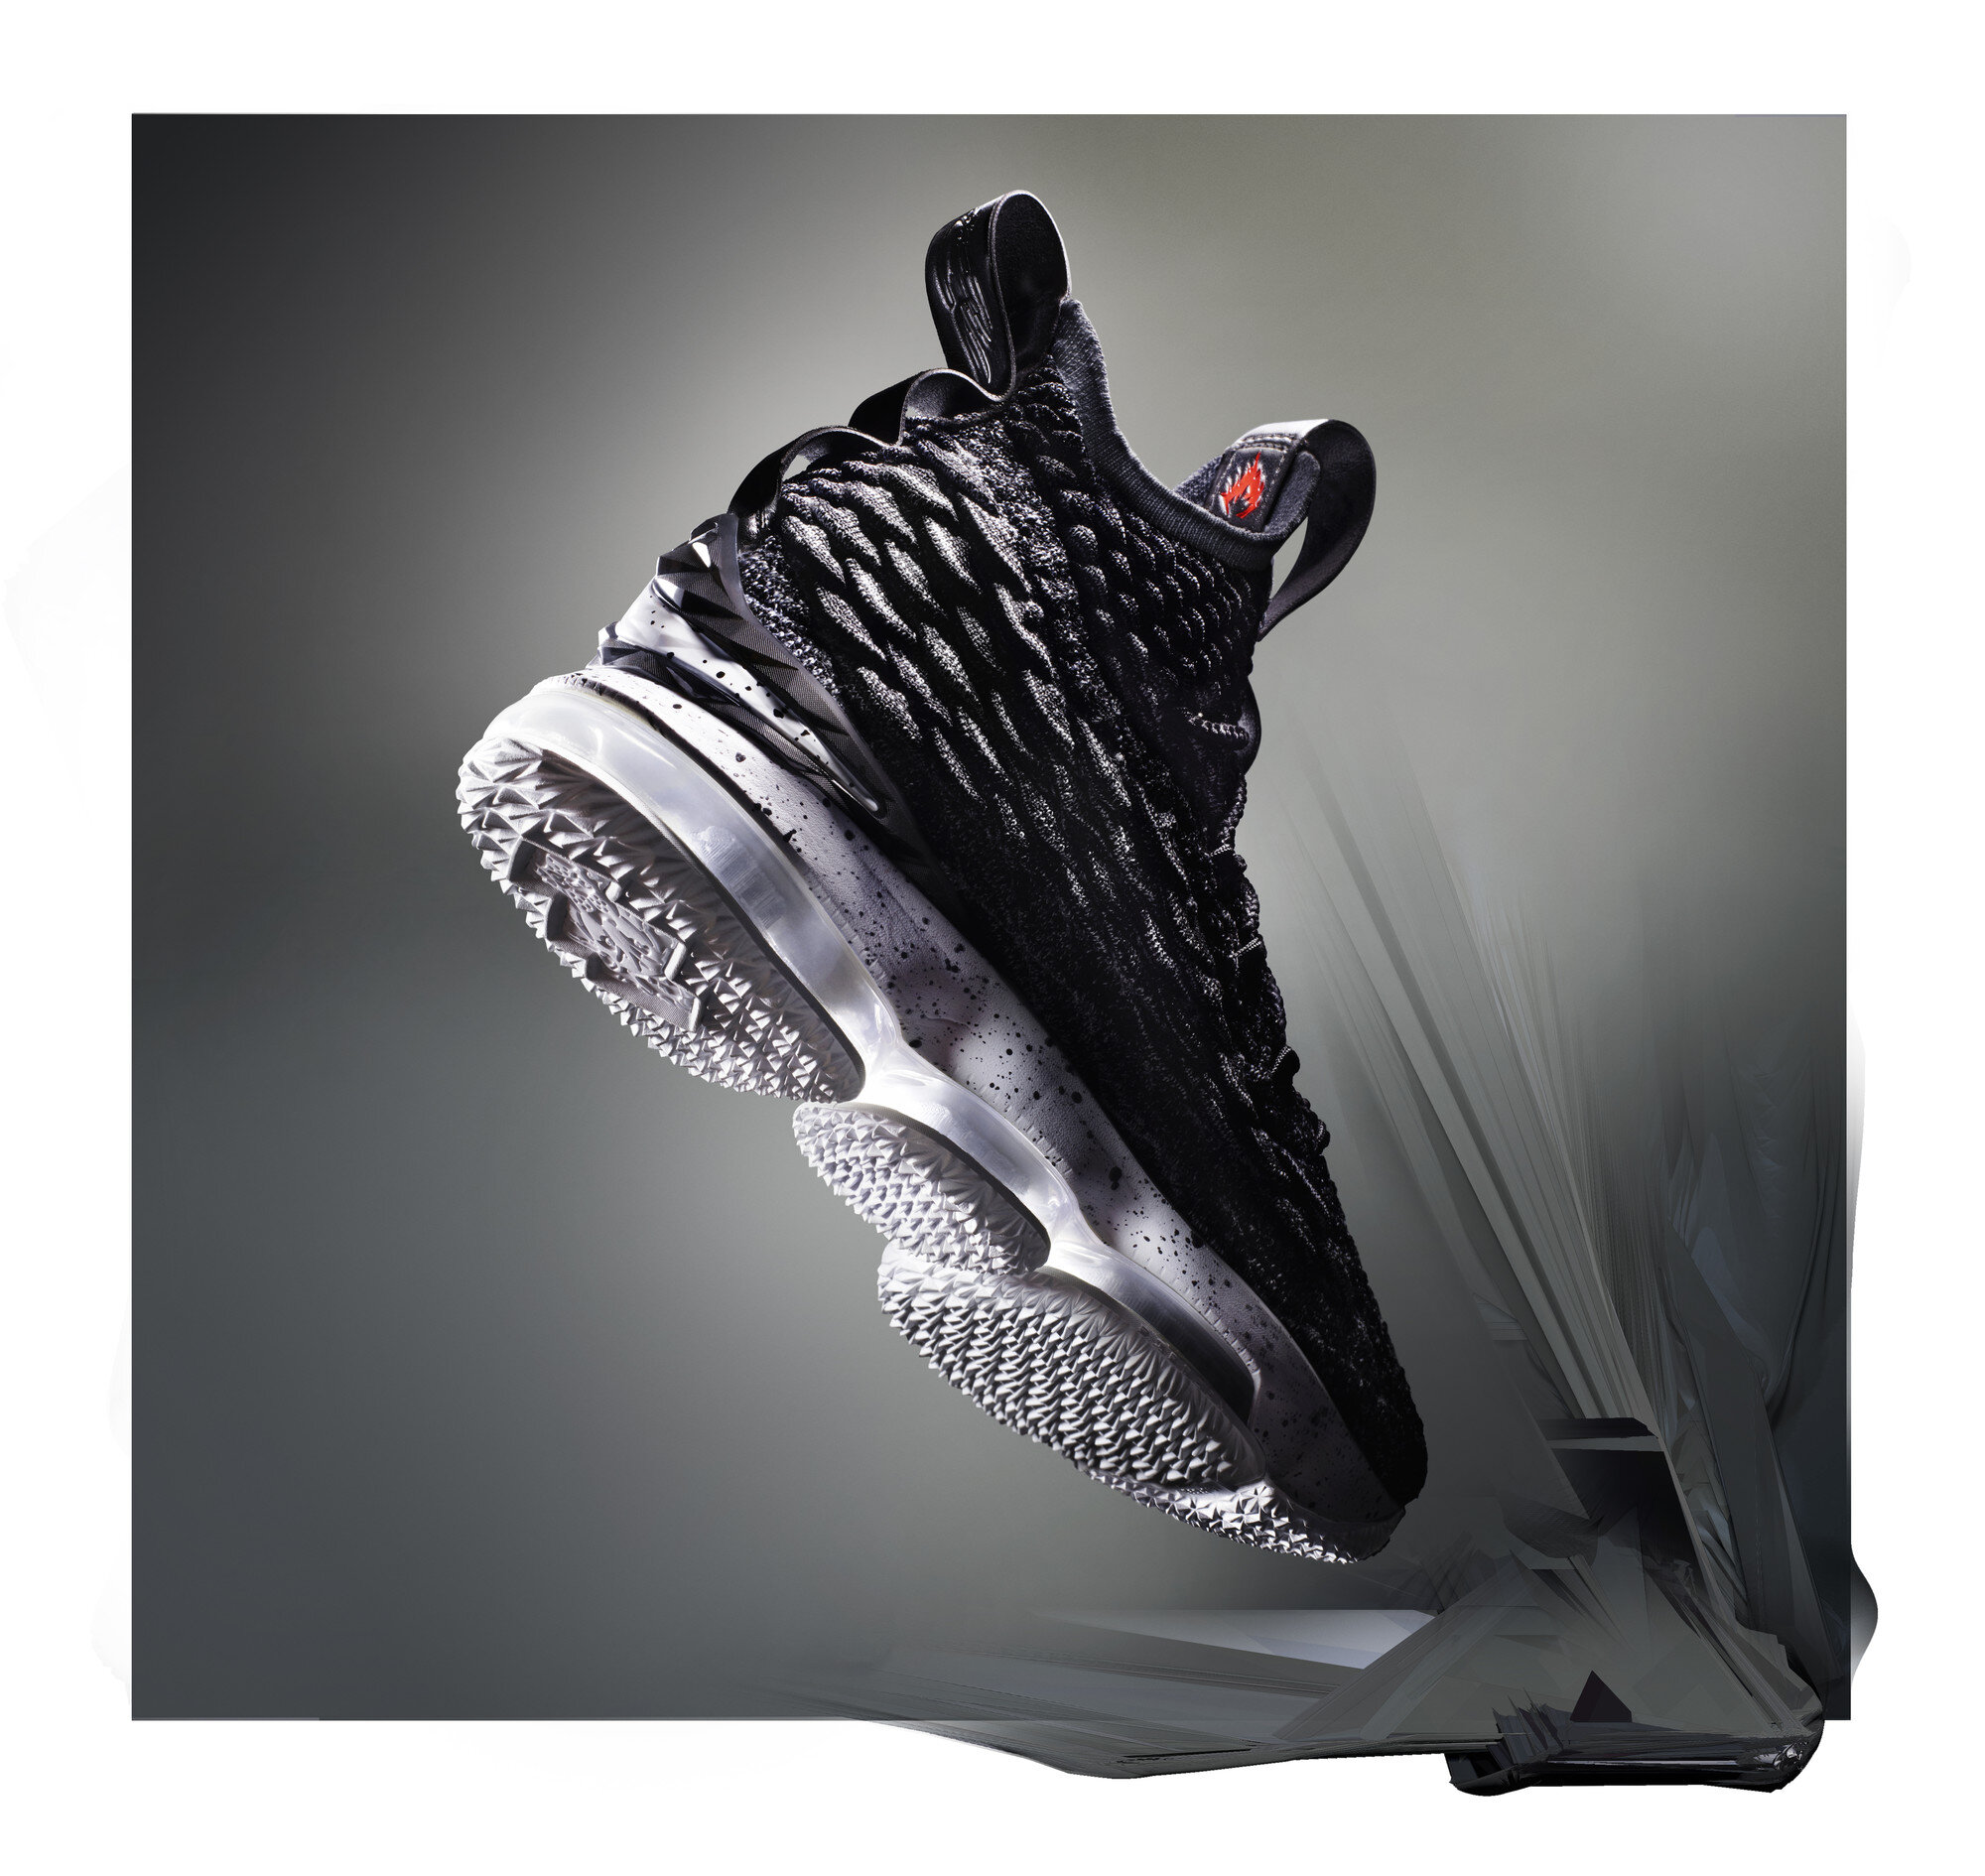 Ho17_BB_LeBron15_897648-002_Ashes_Hero_FTWR_105.jpg